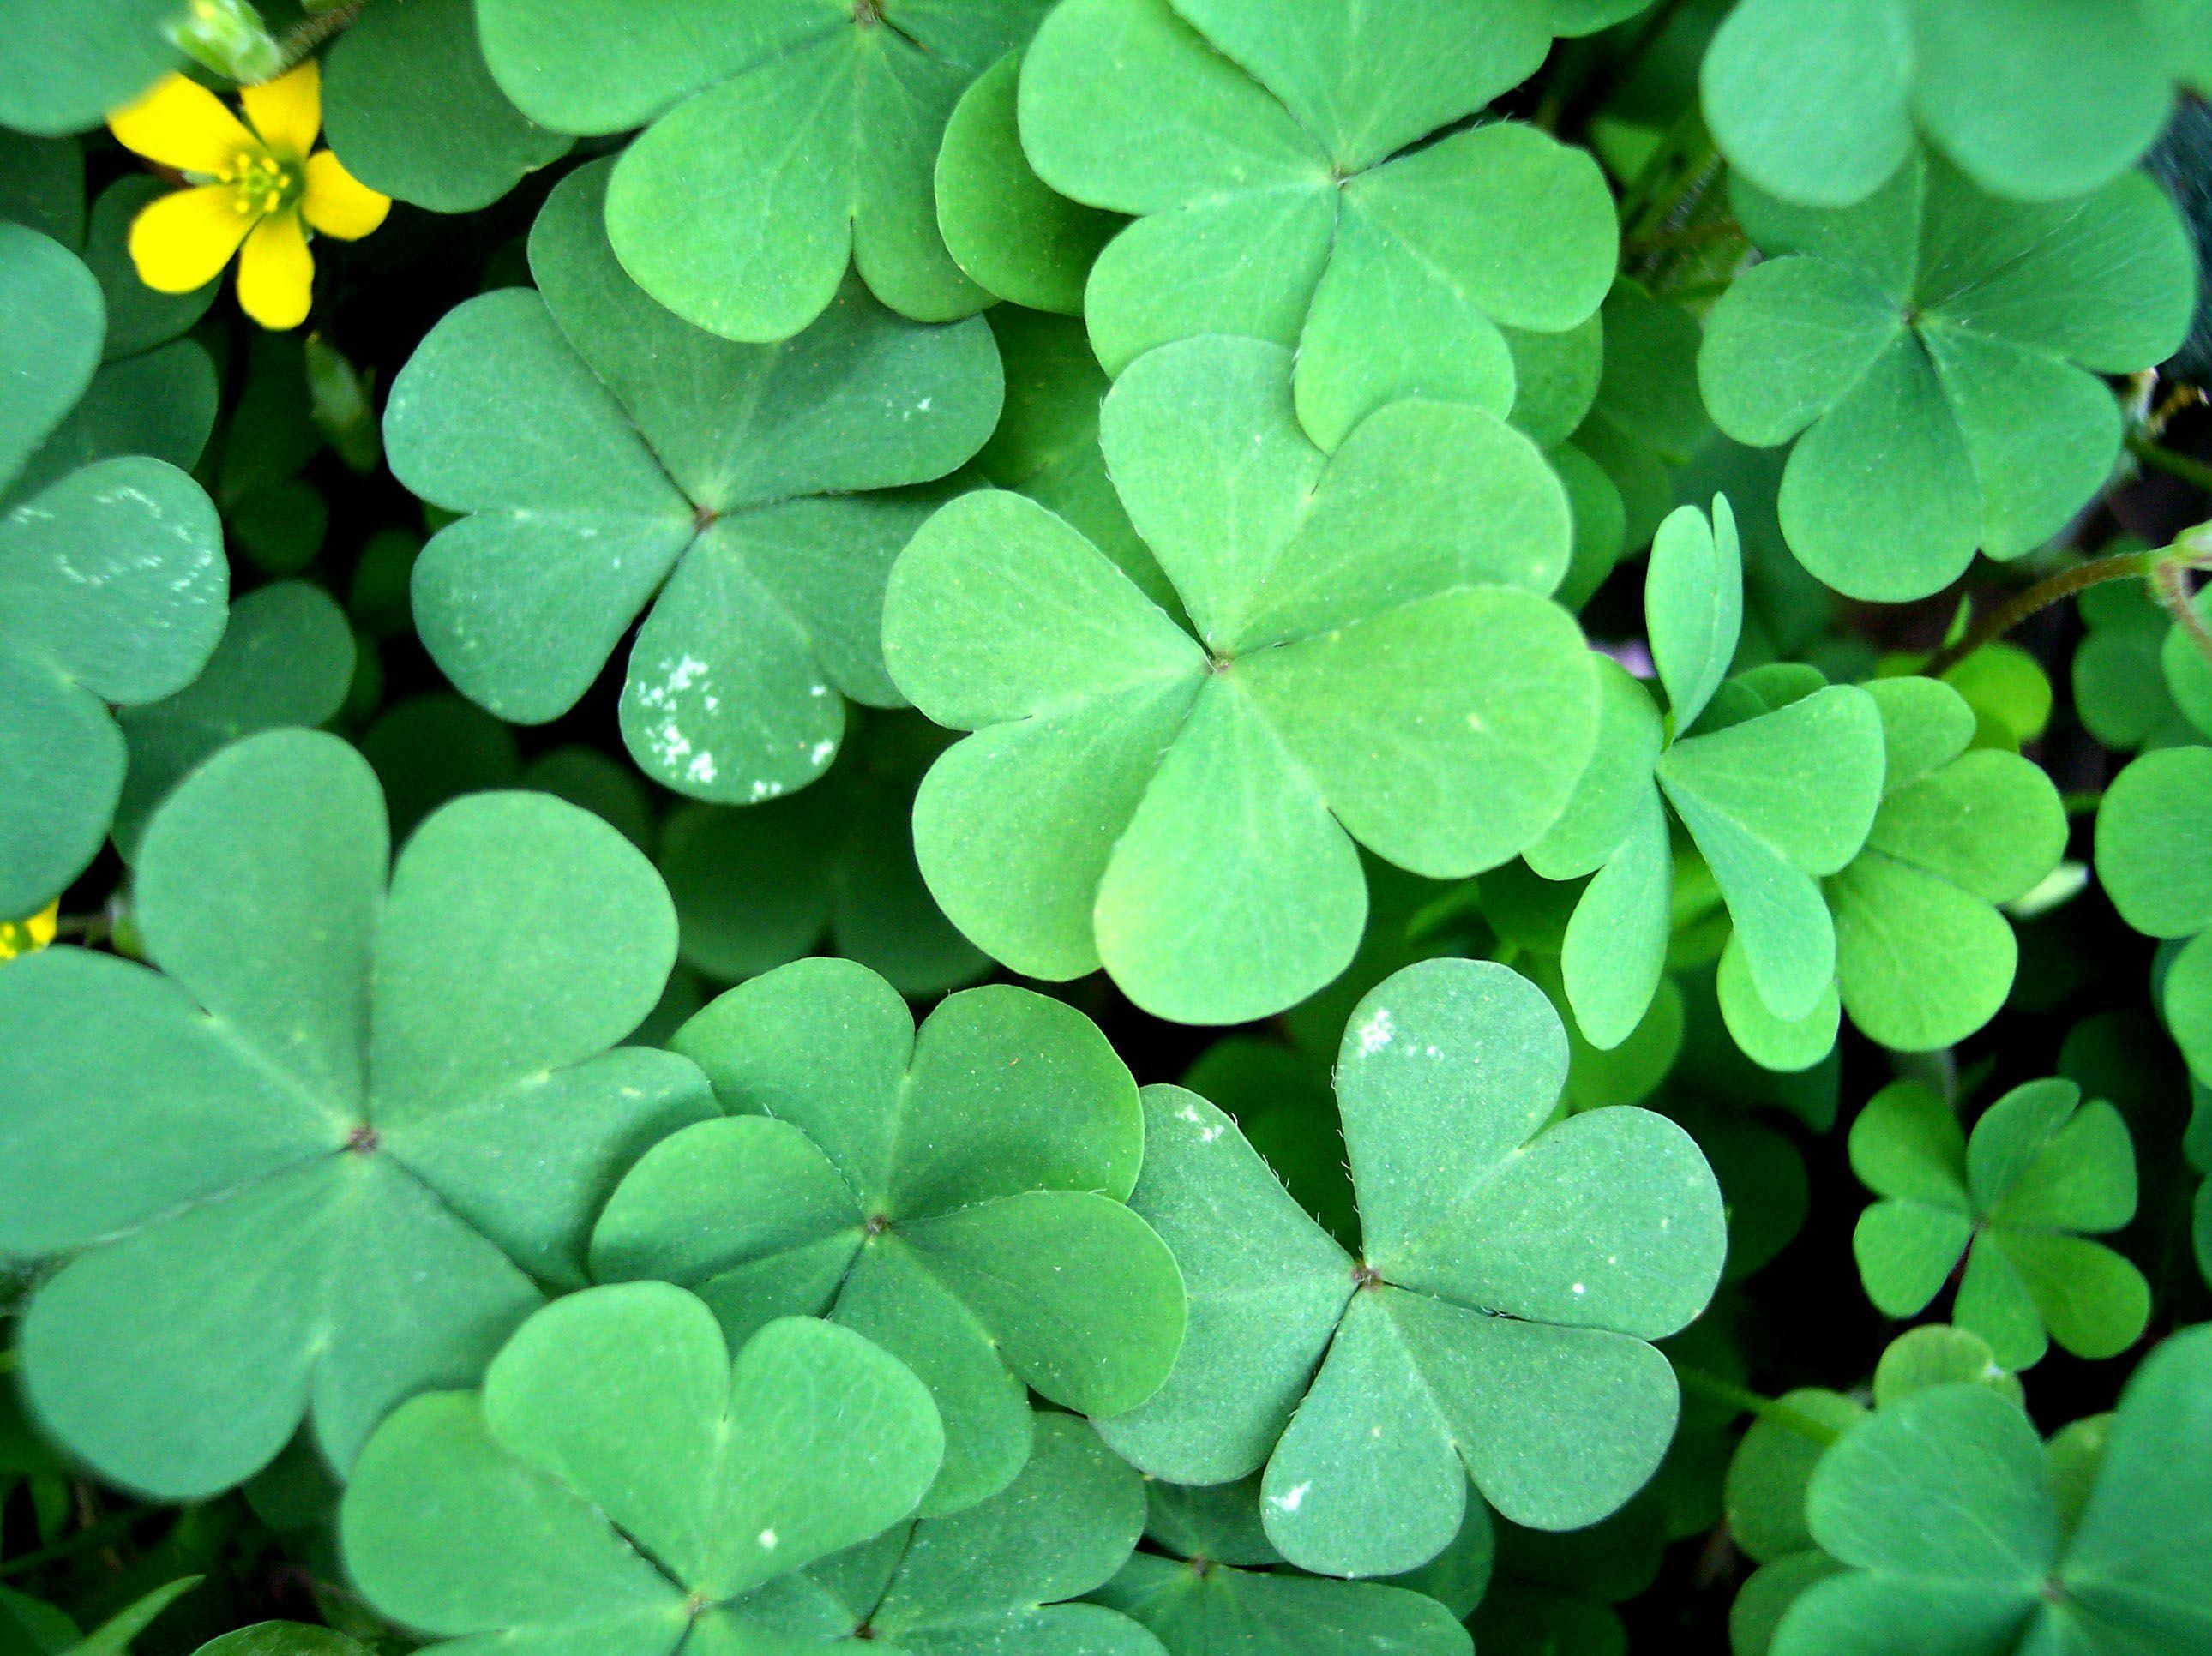 Four Leaf Clover Wallpapers 2580x1932